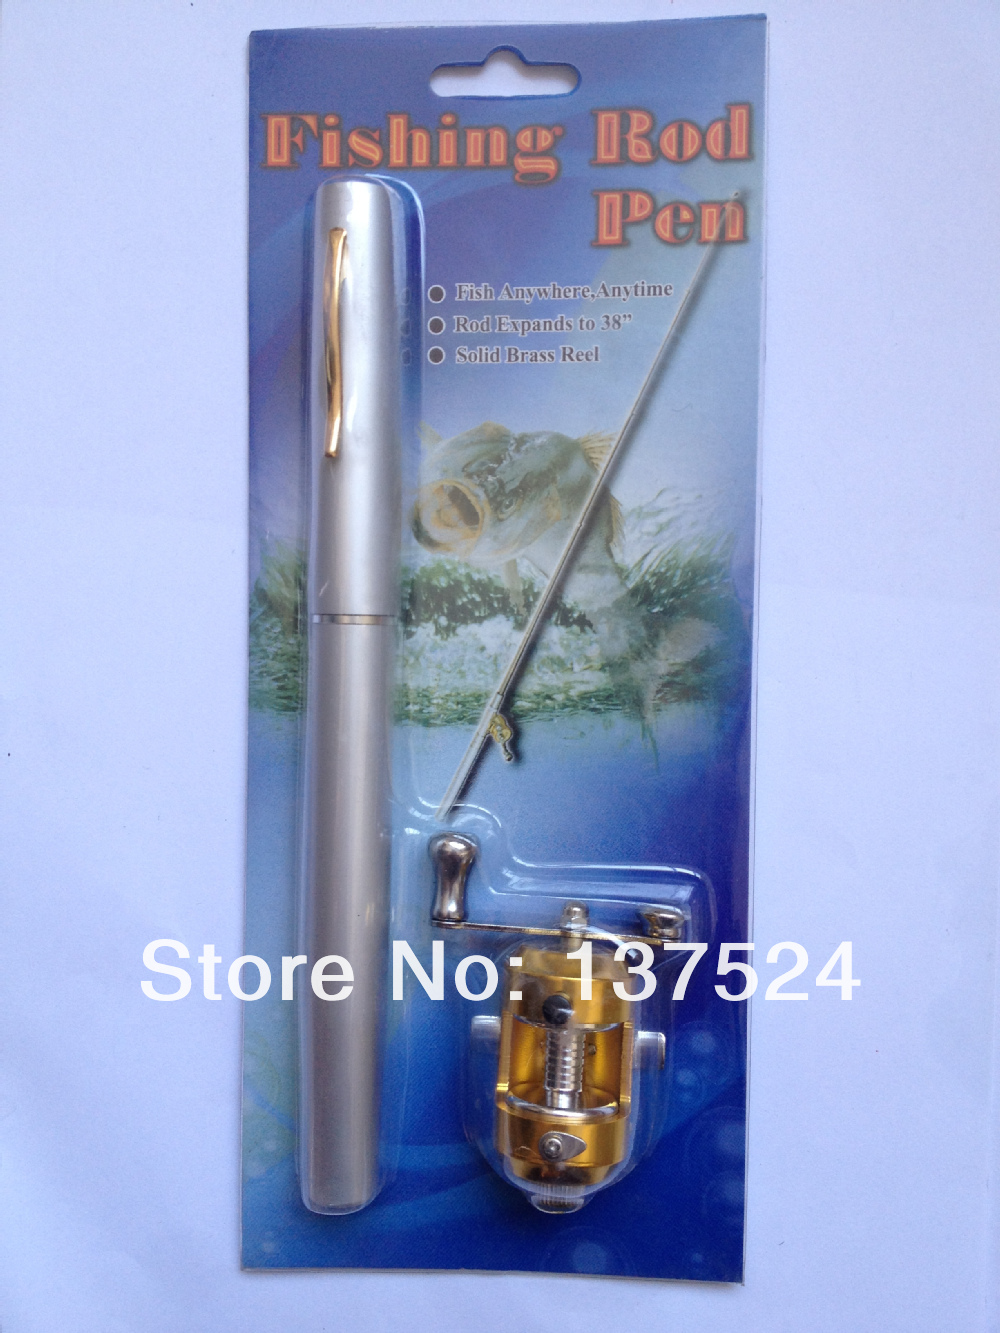 Telescopic Blue Mini Fishing Rod Pen Shape Portable Pocket Aluminum Alloy Fish Spinning Pole Reel - World's Super Store store